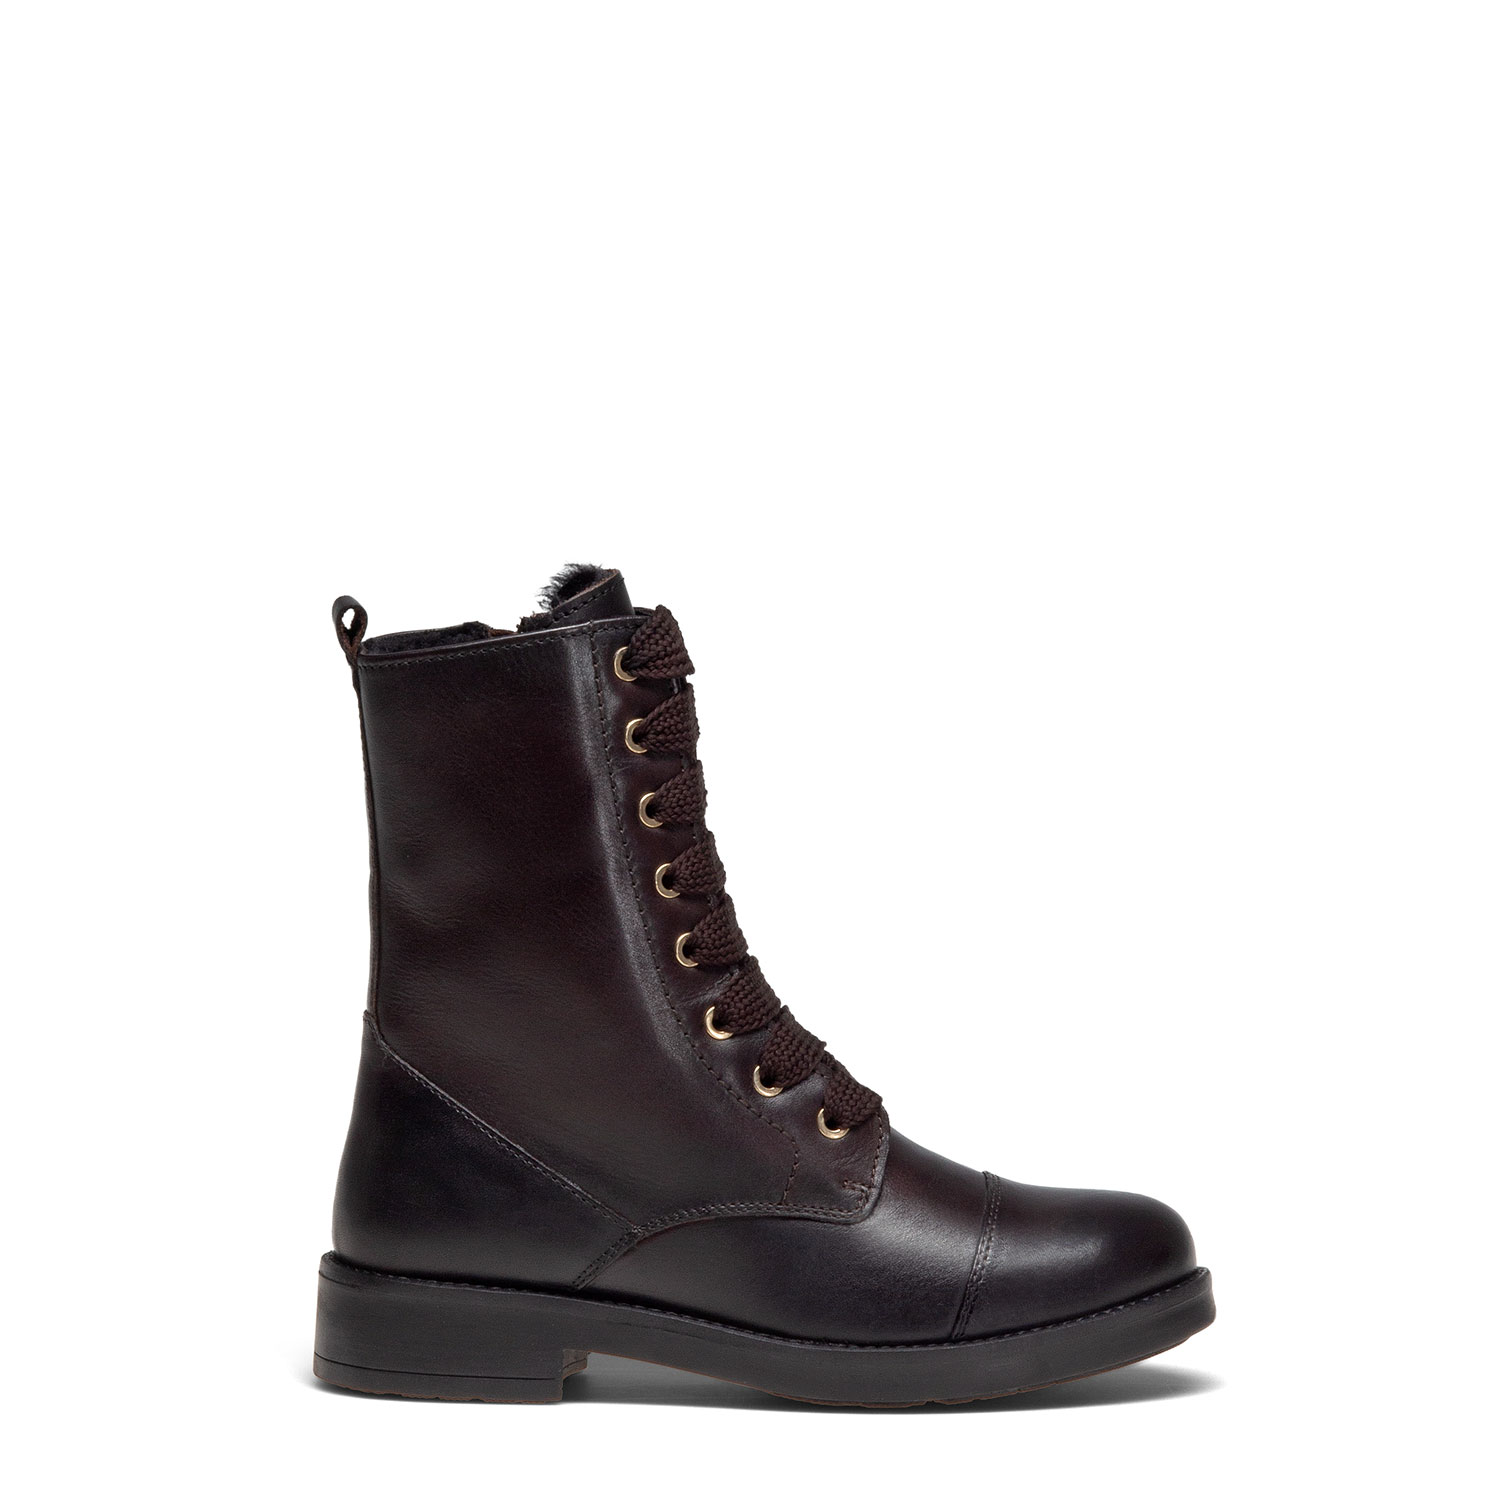 Women's ankle boots PAZOLINI IA-X5522-2